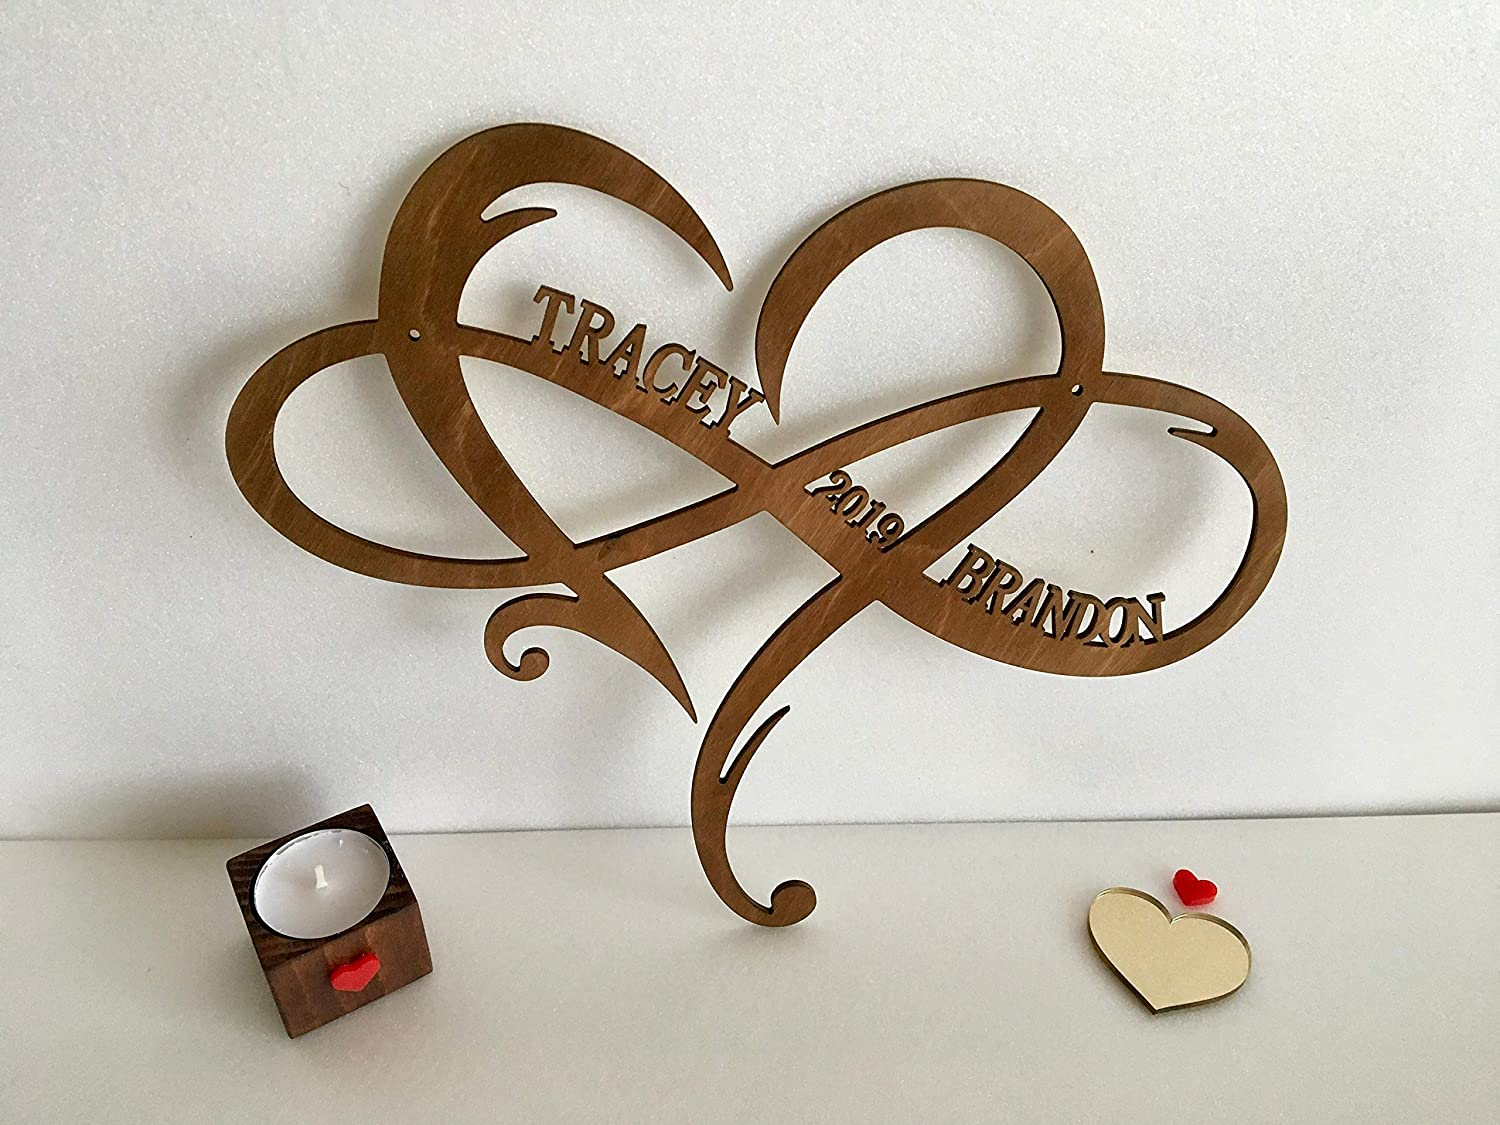 Personalized Infinity Symbol Custom Wood Wedding Sign Couple Names Established Year Heart Sign Wooden Love Heart Shape Wedding Gift Wall Hanging Door Hanger Est. Family Gift for Couples Home Decor